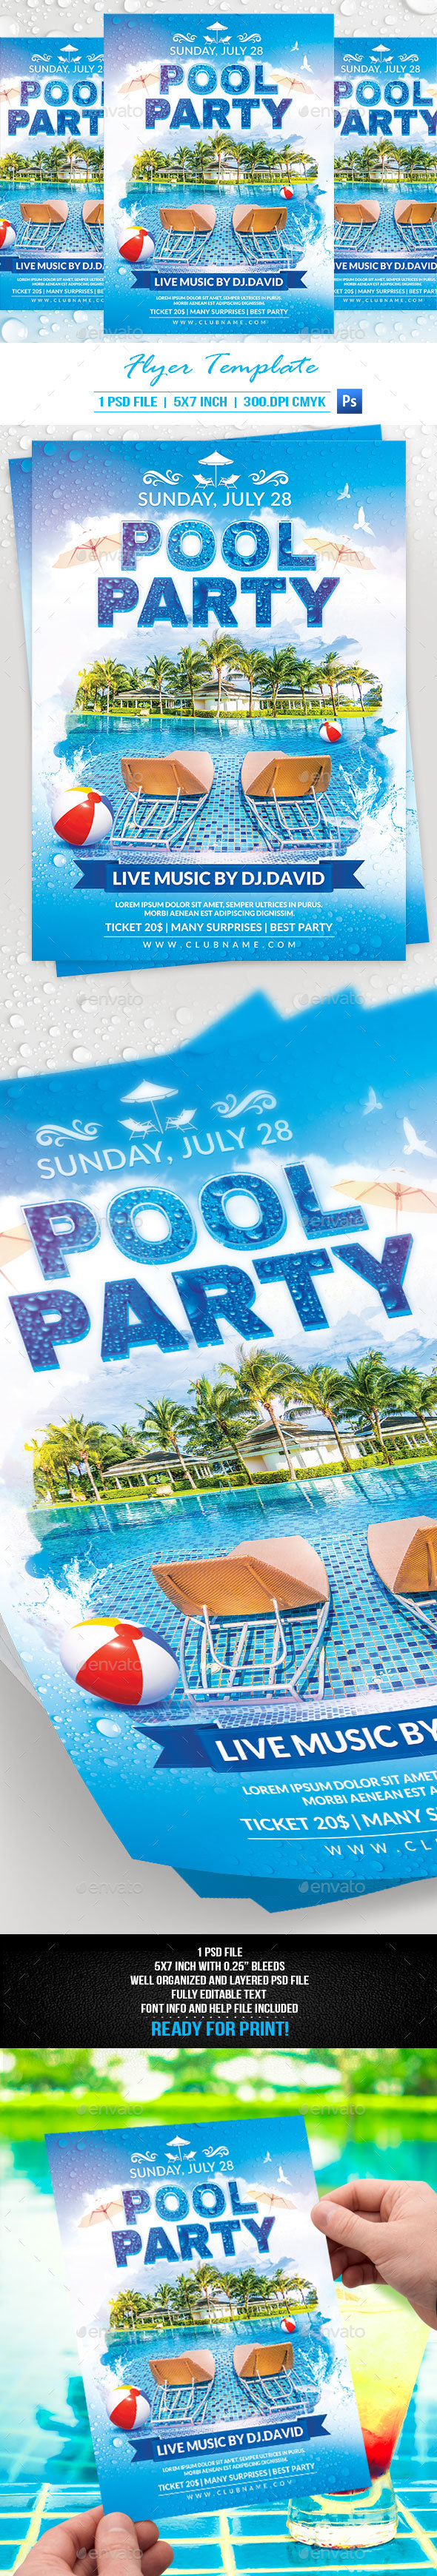 Pool Party Flyer Template - Events Flyers